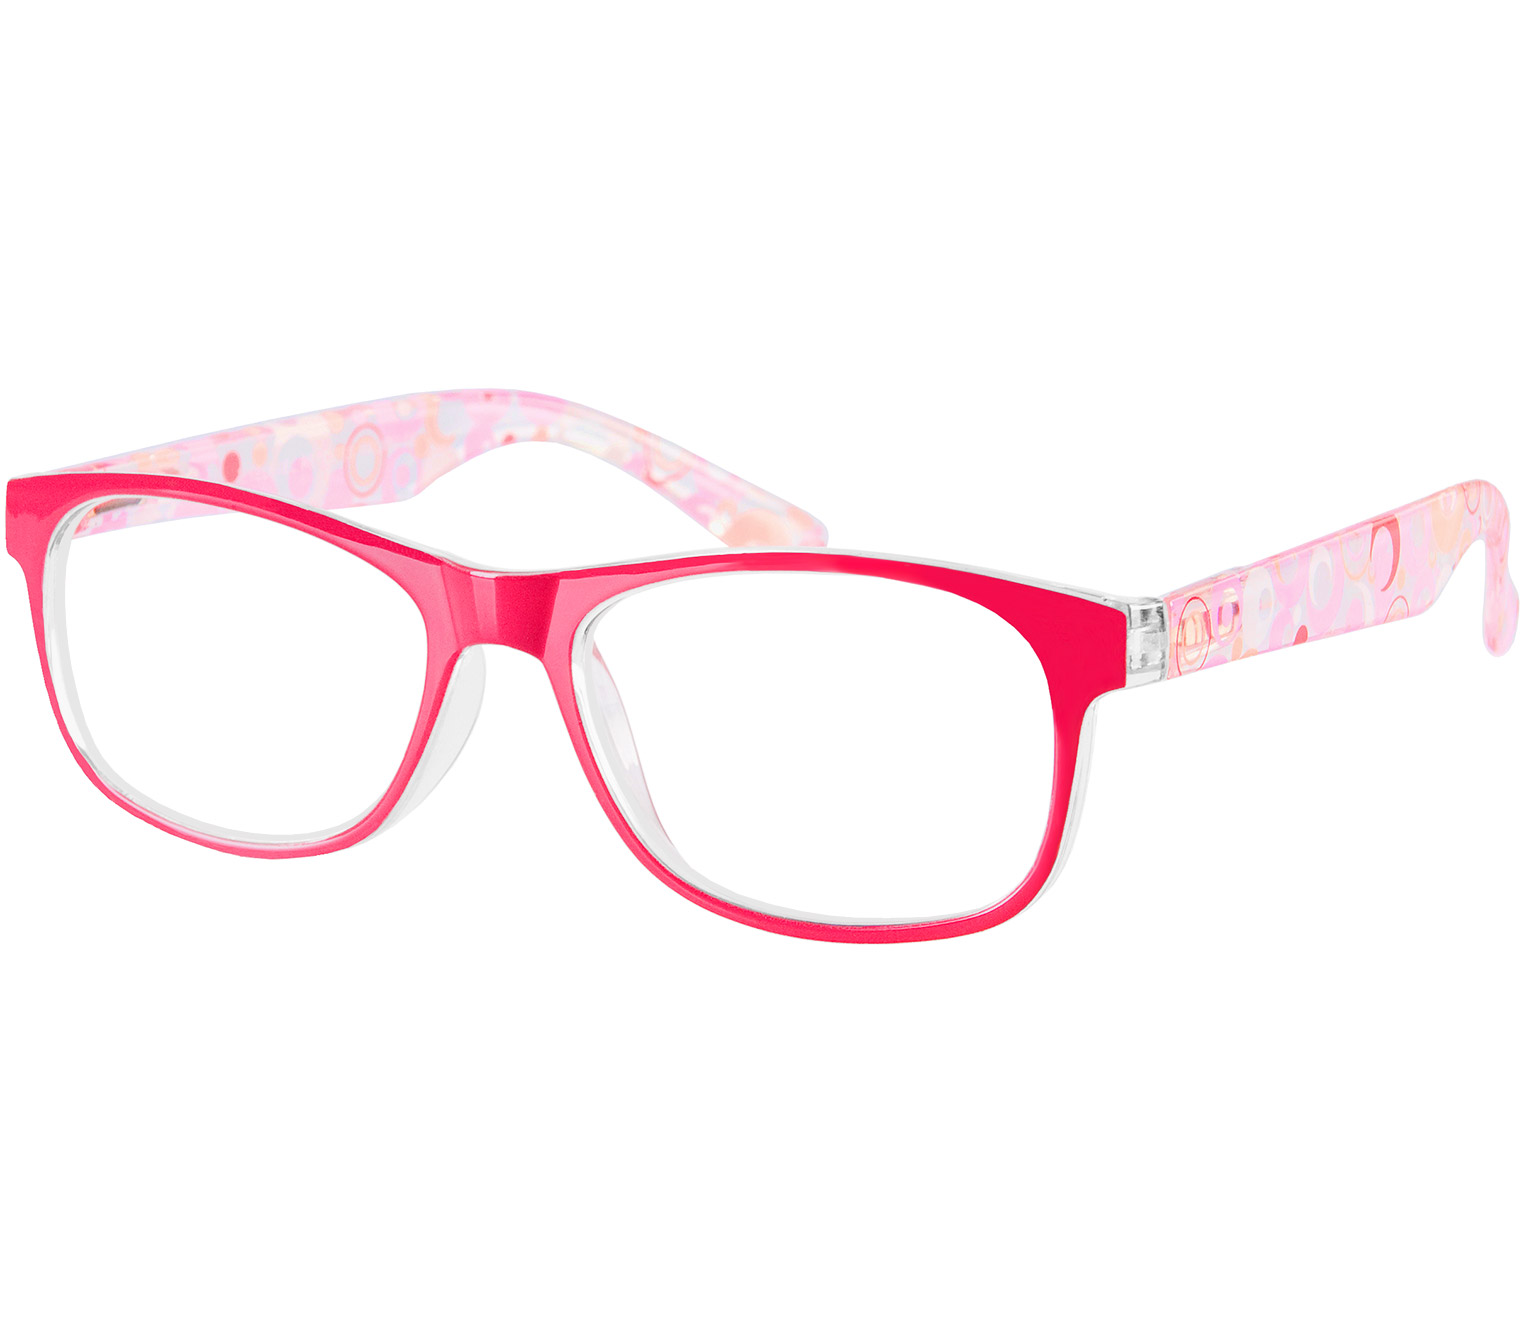 Main Image (Angle) - Fizz (Red) Fashion Reading Glasses